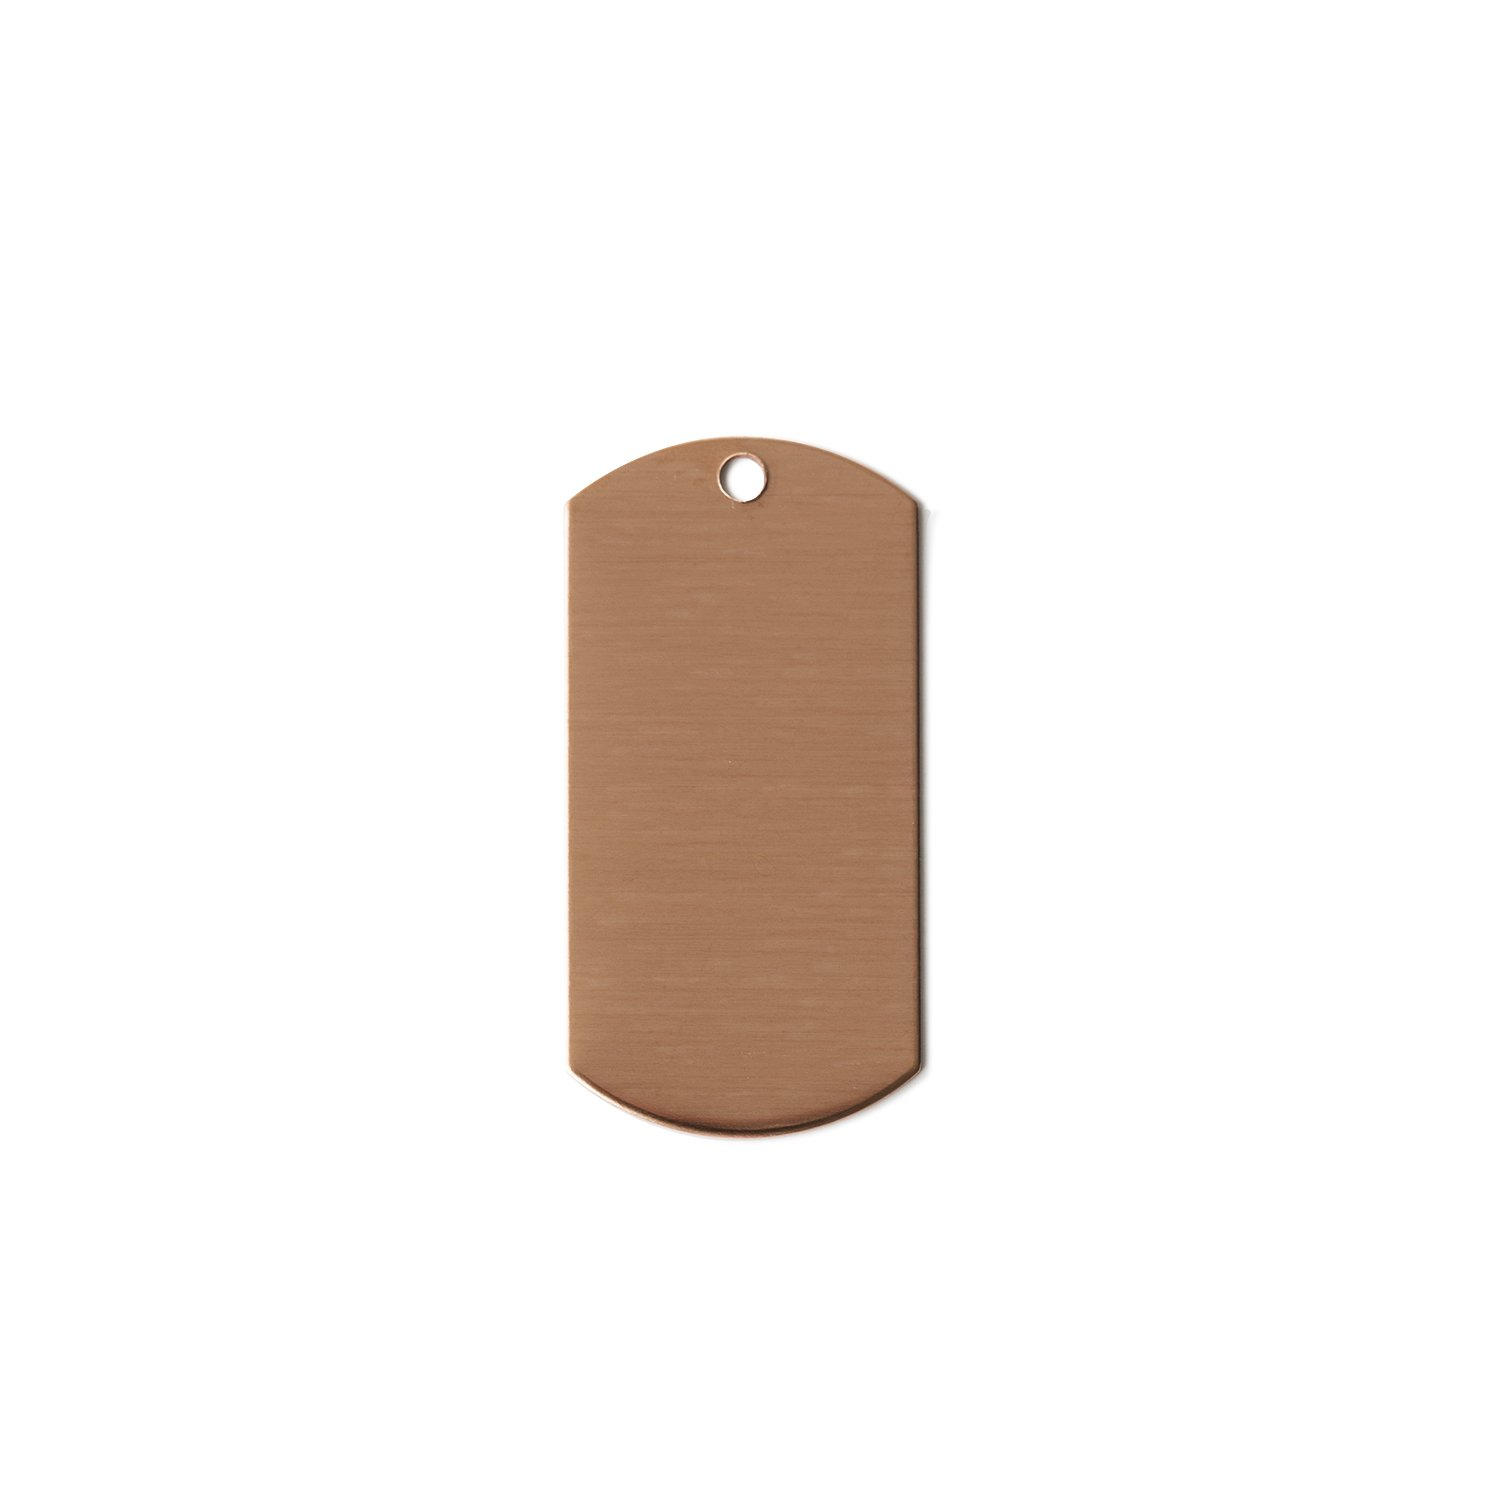 RMP Stamping Blanks, 1 X 2 Dog Tag w/ One Hole , 16 Oz. Copper, 24 Ga. - 10 Pack Rose Metal Products